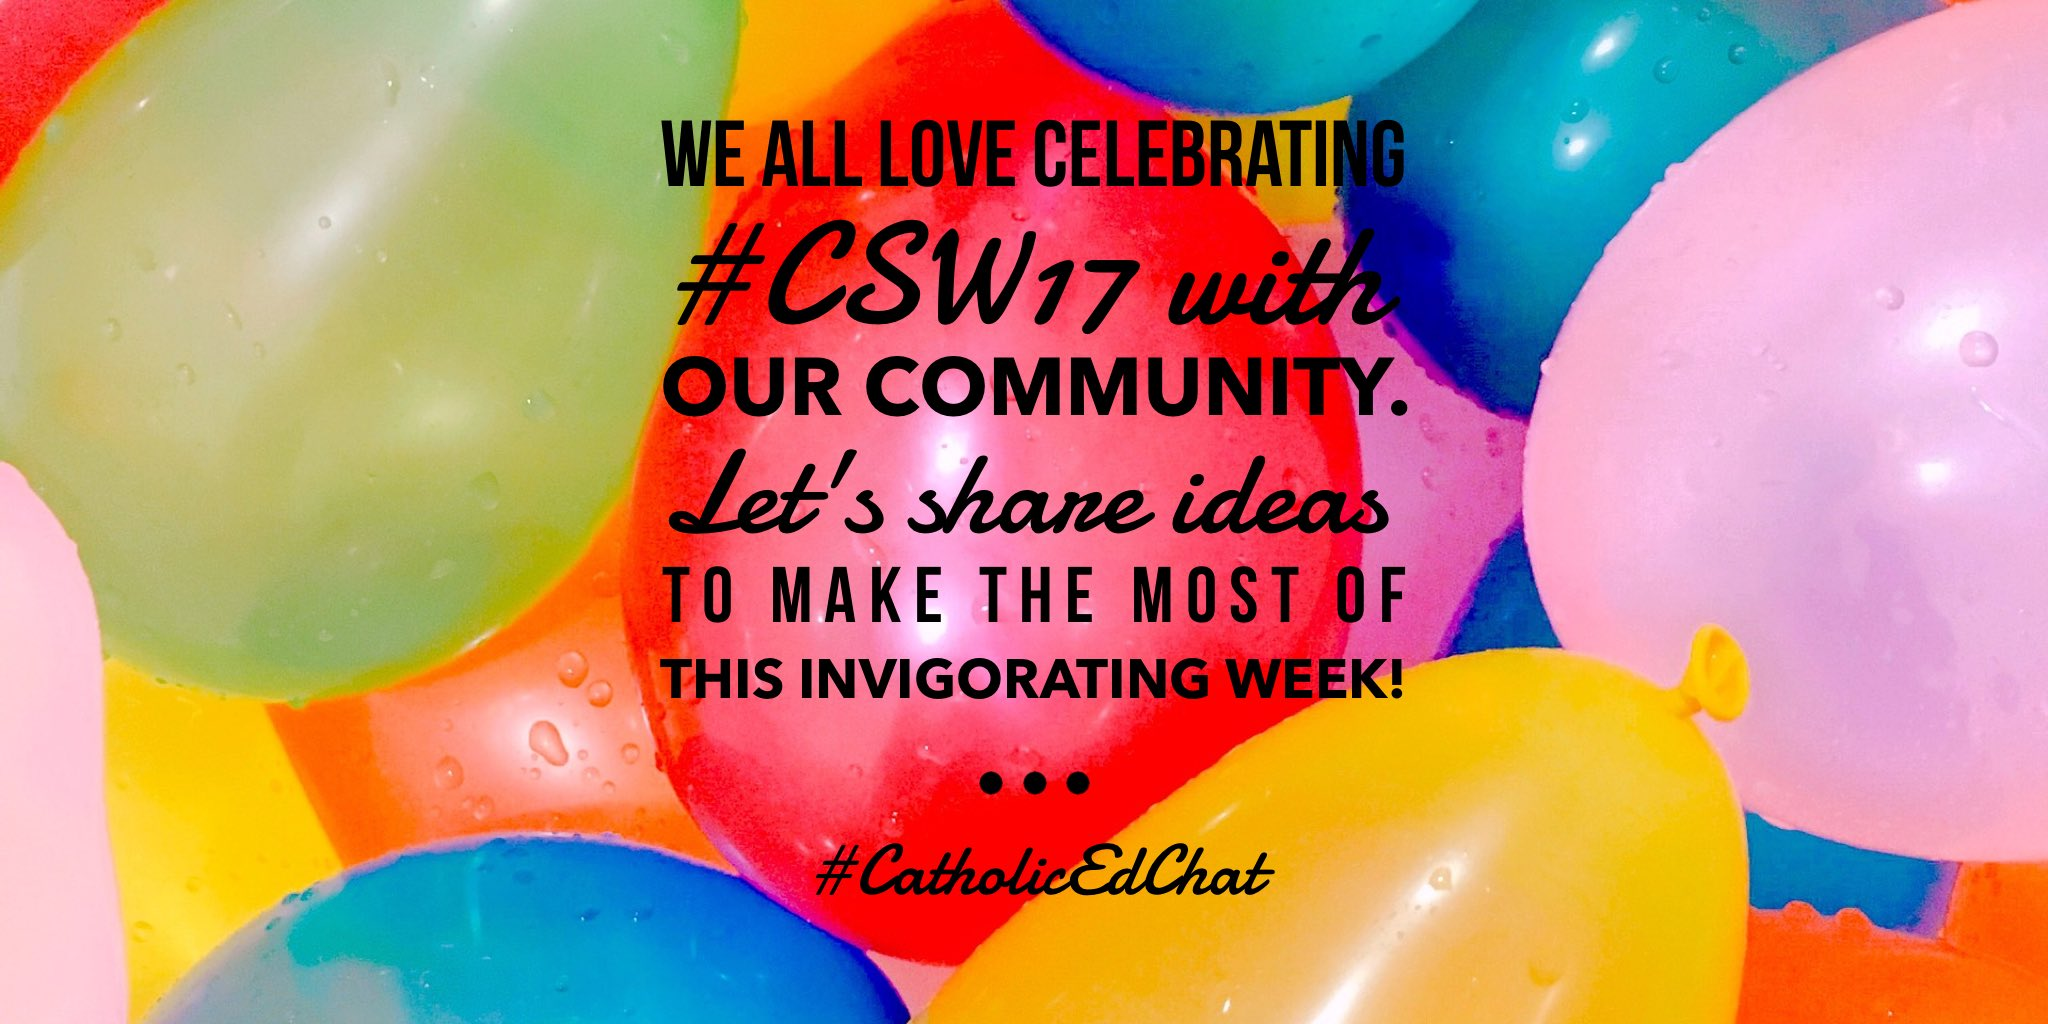 How can you keep your energy up during the fun of #CSW17? We will share self care ideas during #CatholicEdChat https://t.co/ThXidUcpah